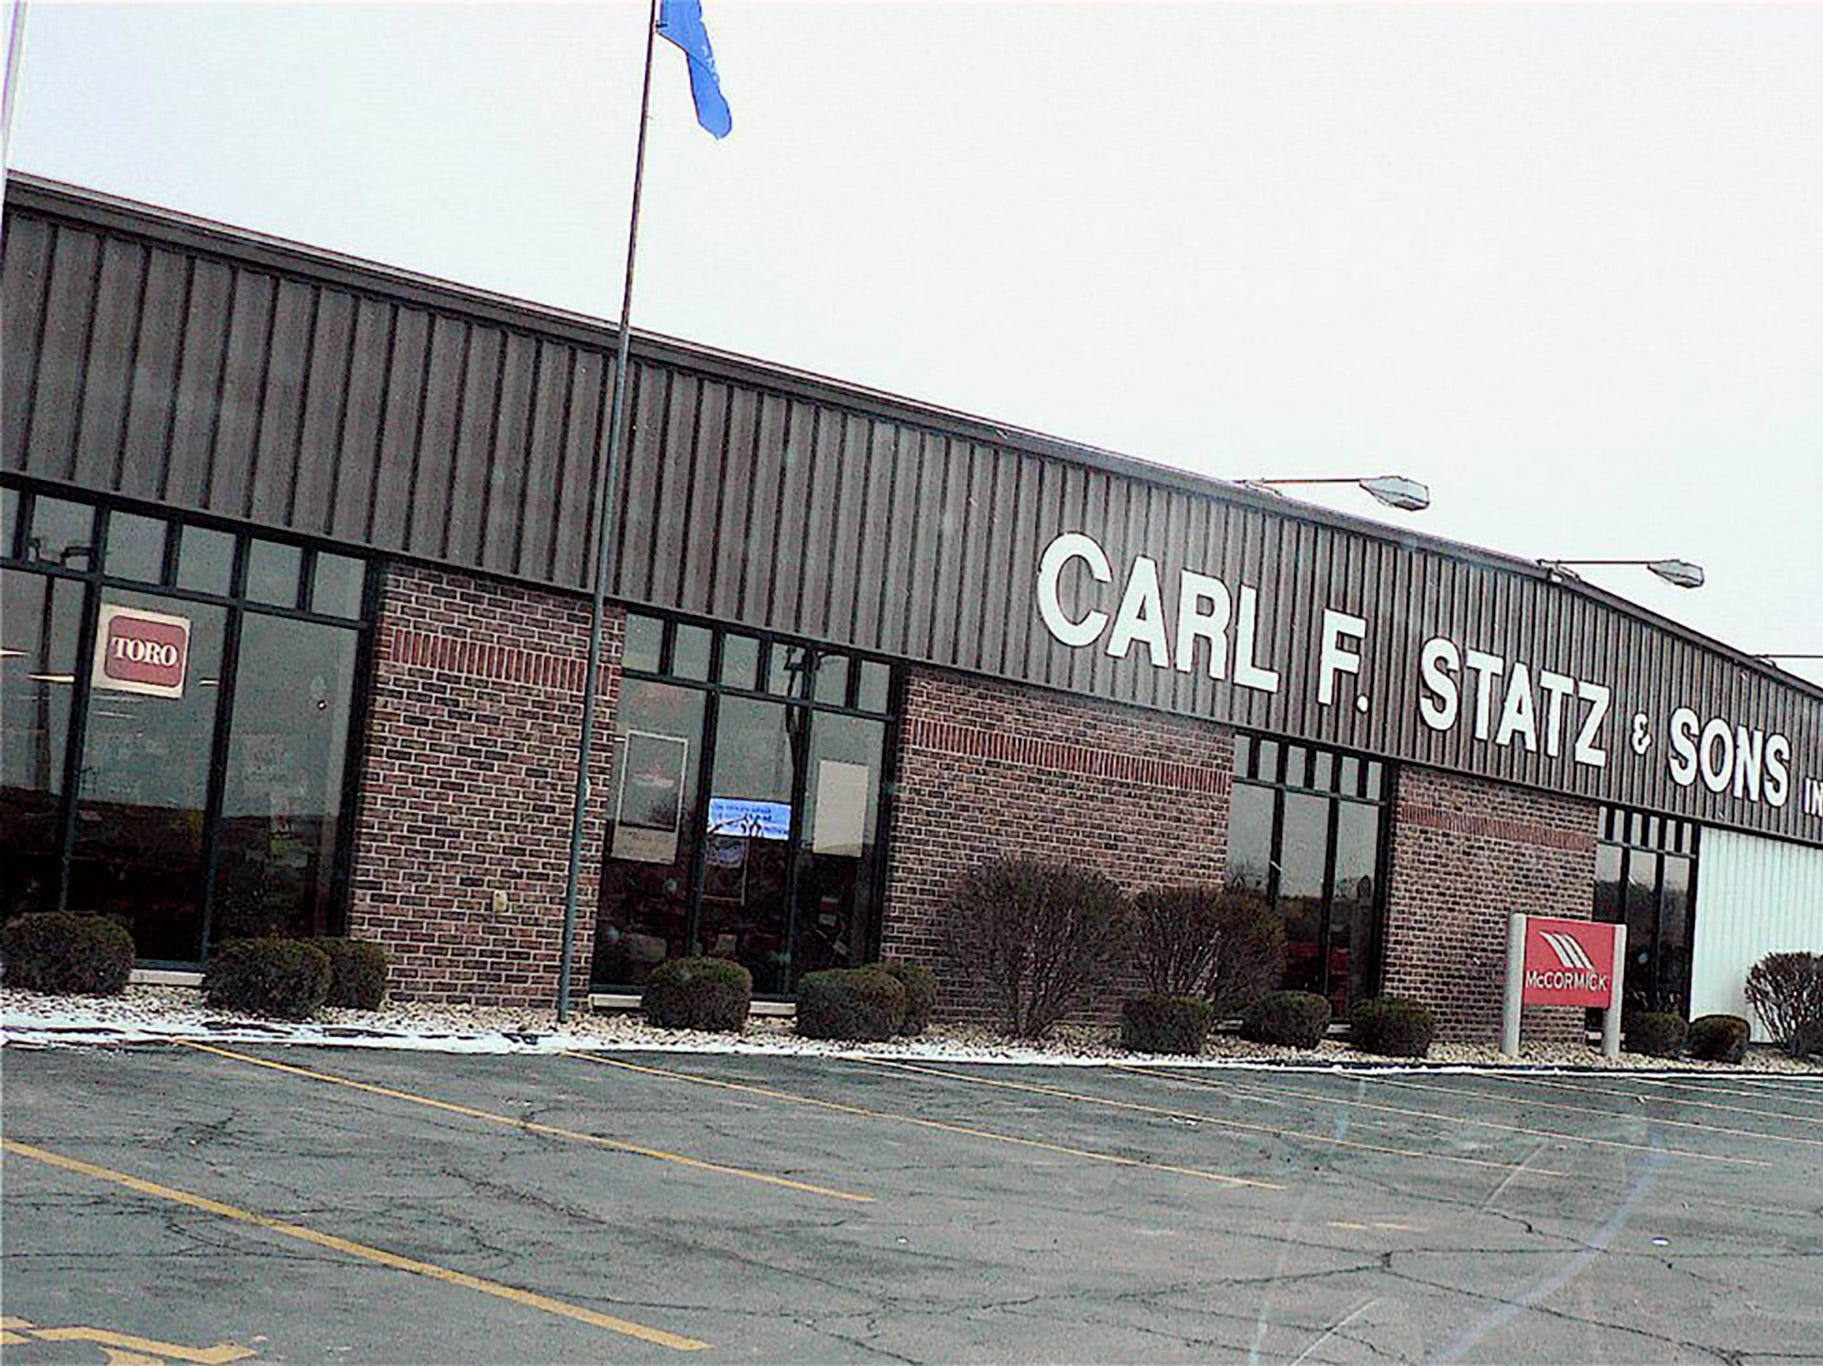 Carl F. Statz and Sons, at Waunakee since 1930.